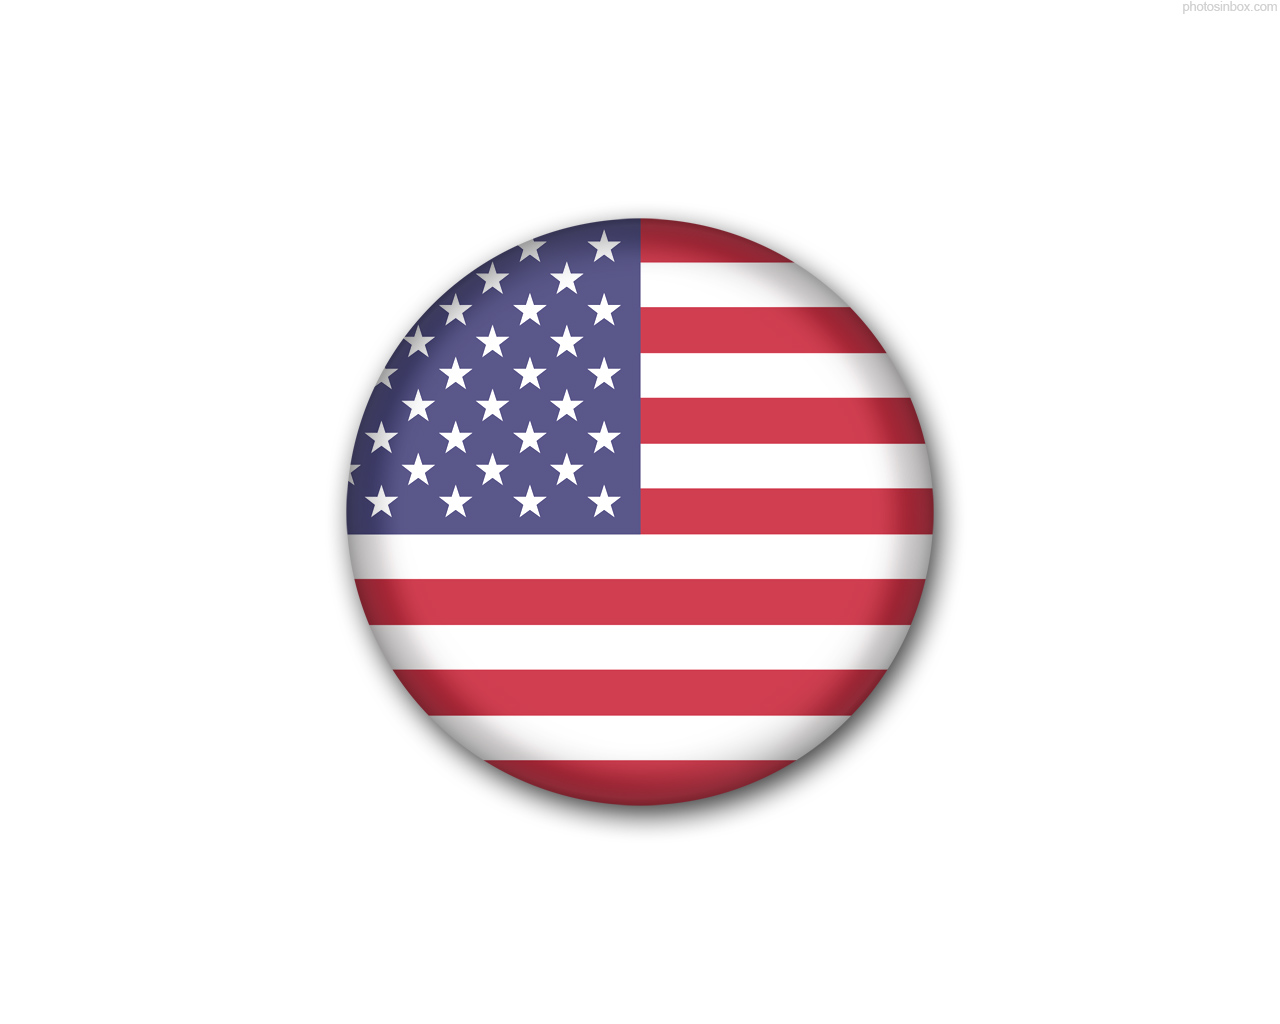 Round us flag clipart svg royalty free Round us flag clipart - ClipartFest svg royalty free